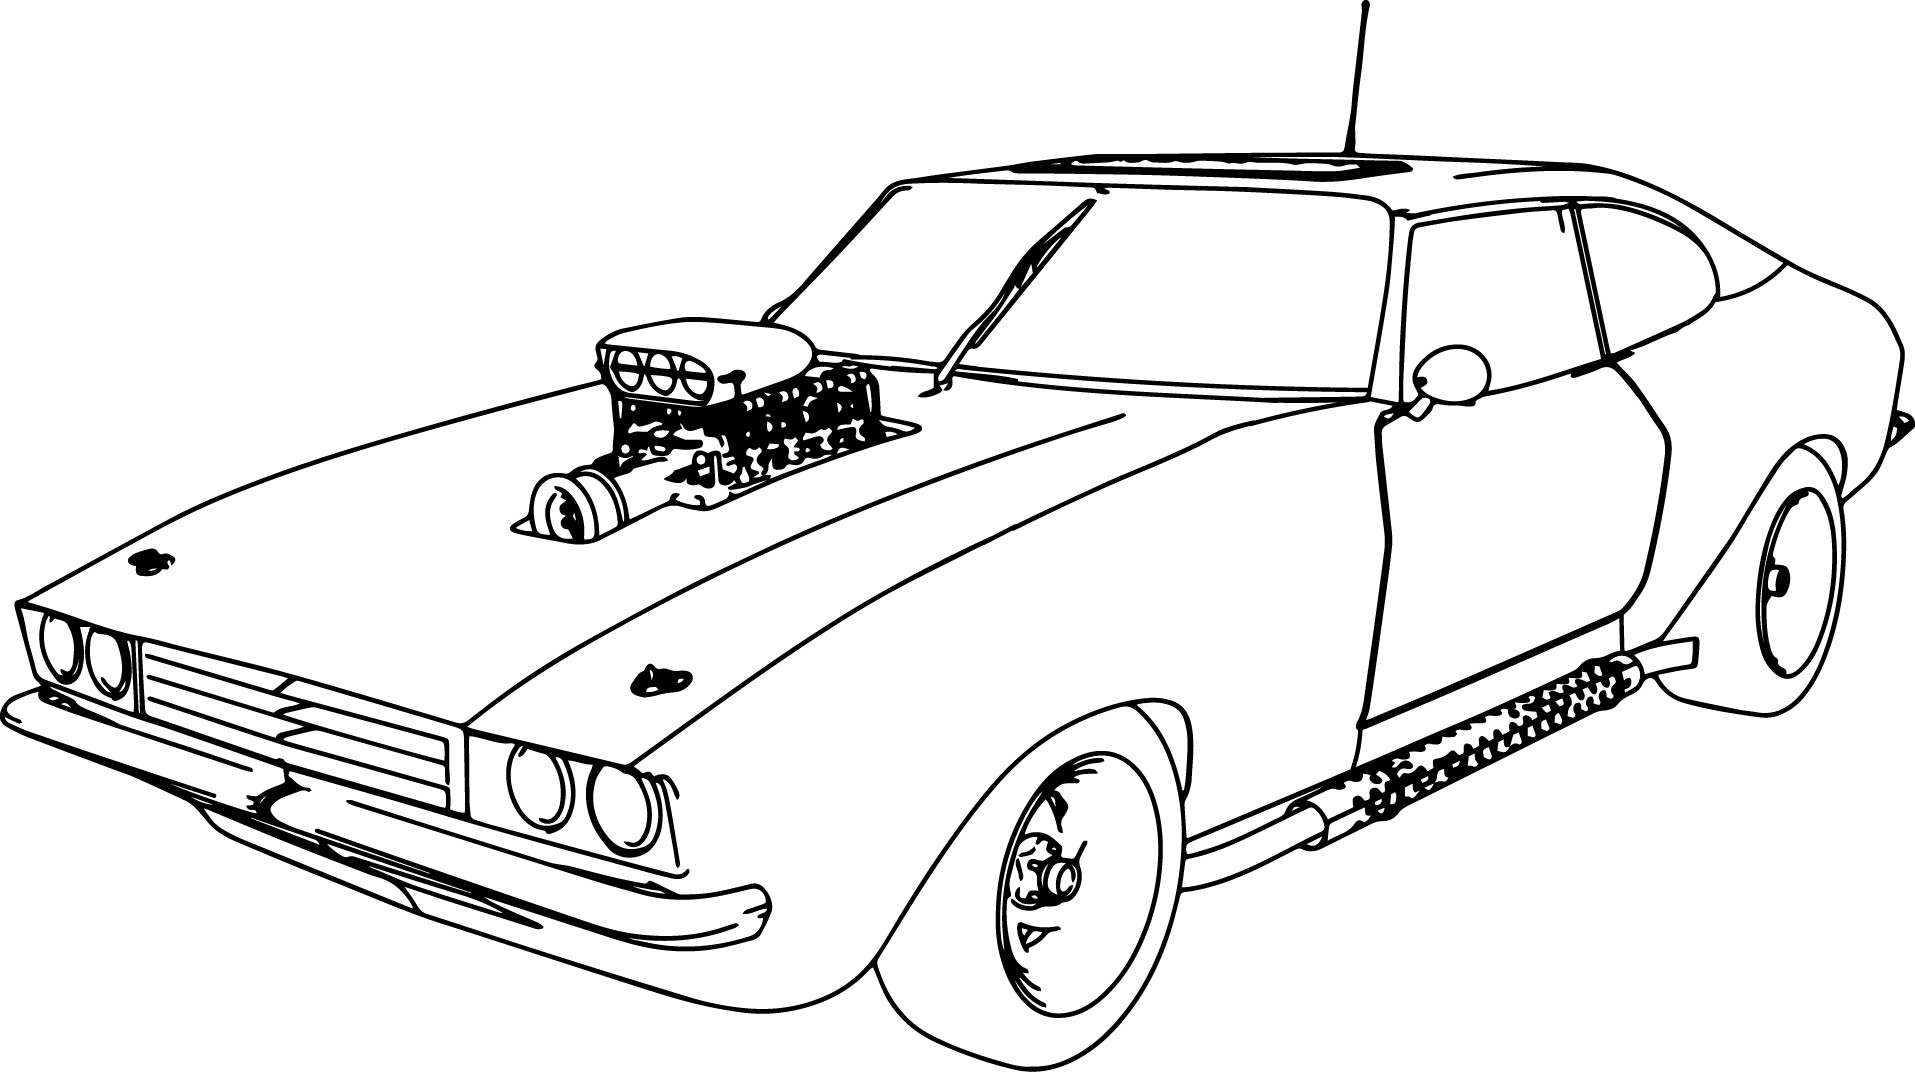 1915x1072 Classic Cars Coloring Pages For Adults Best Of Muscle Car Also